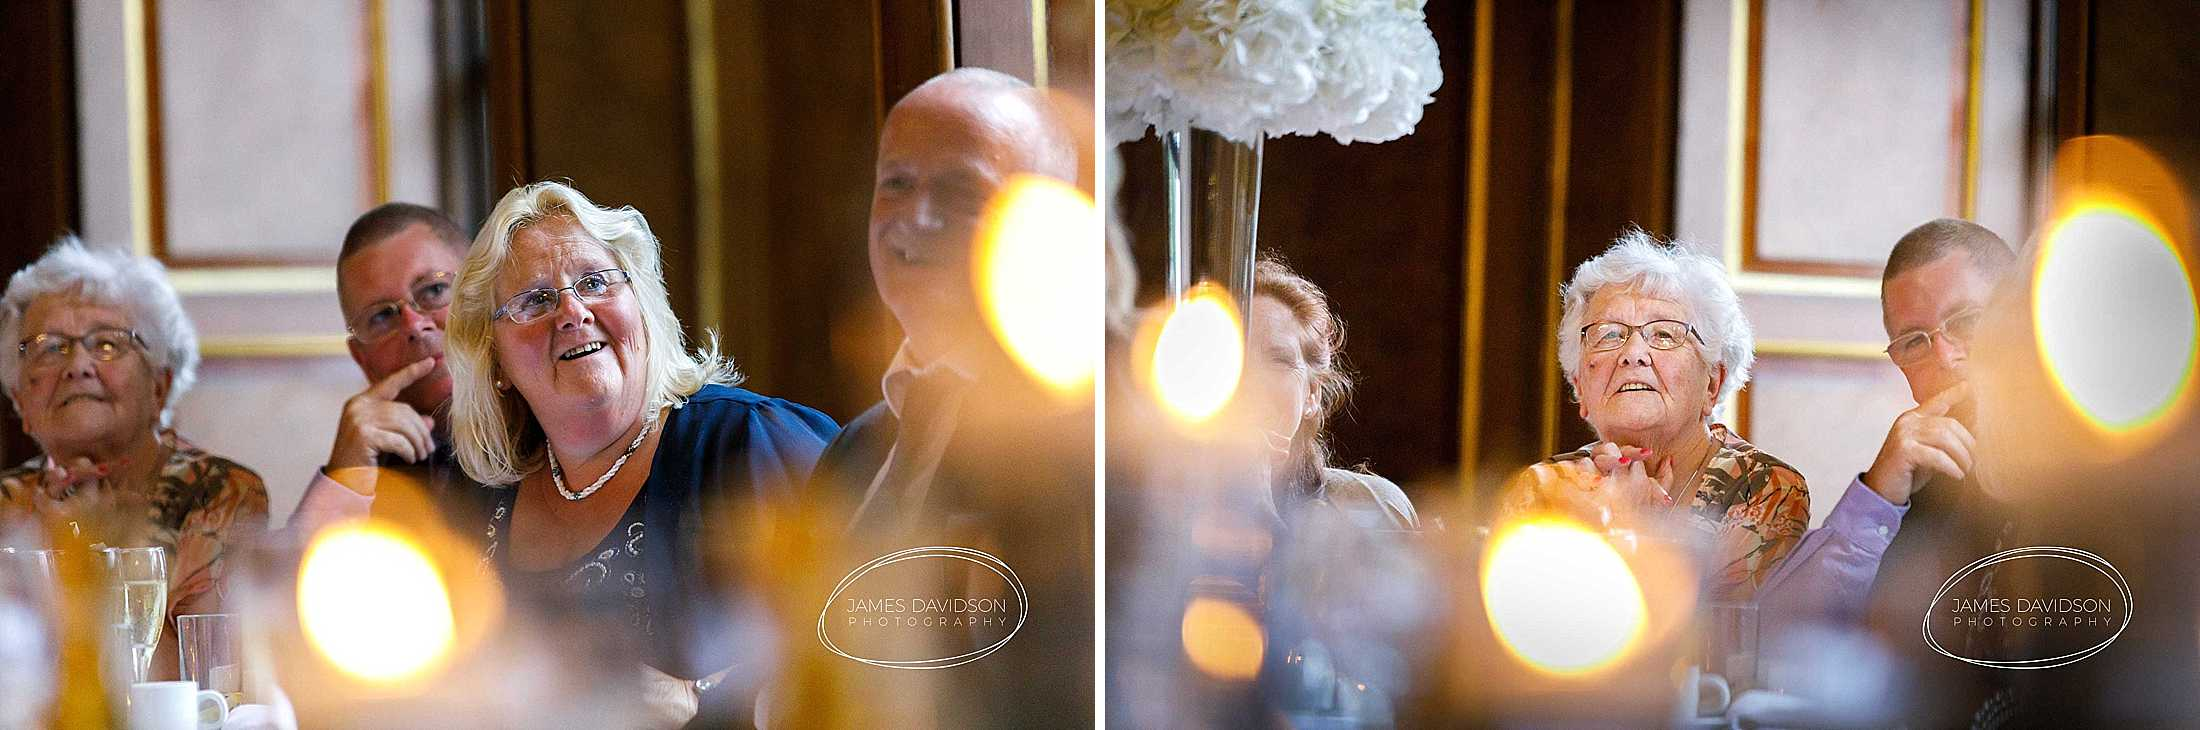 gosfield-hall-wedding-photography-120